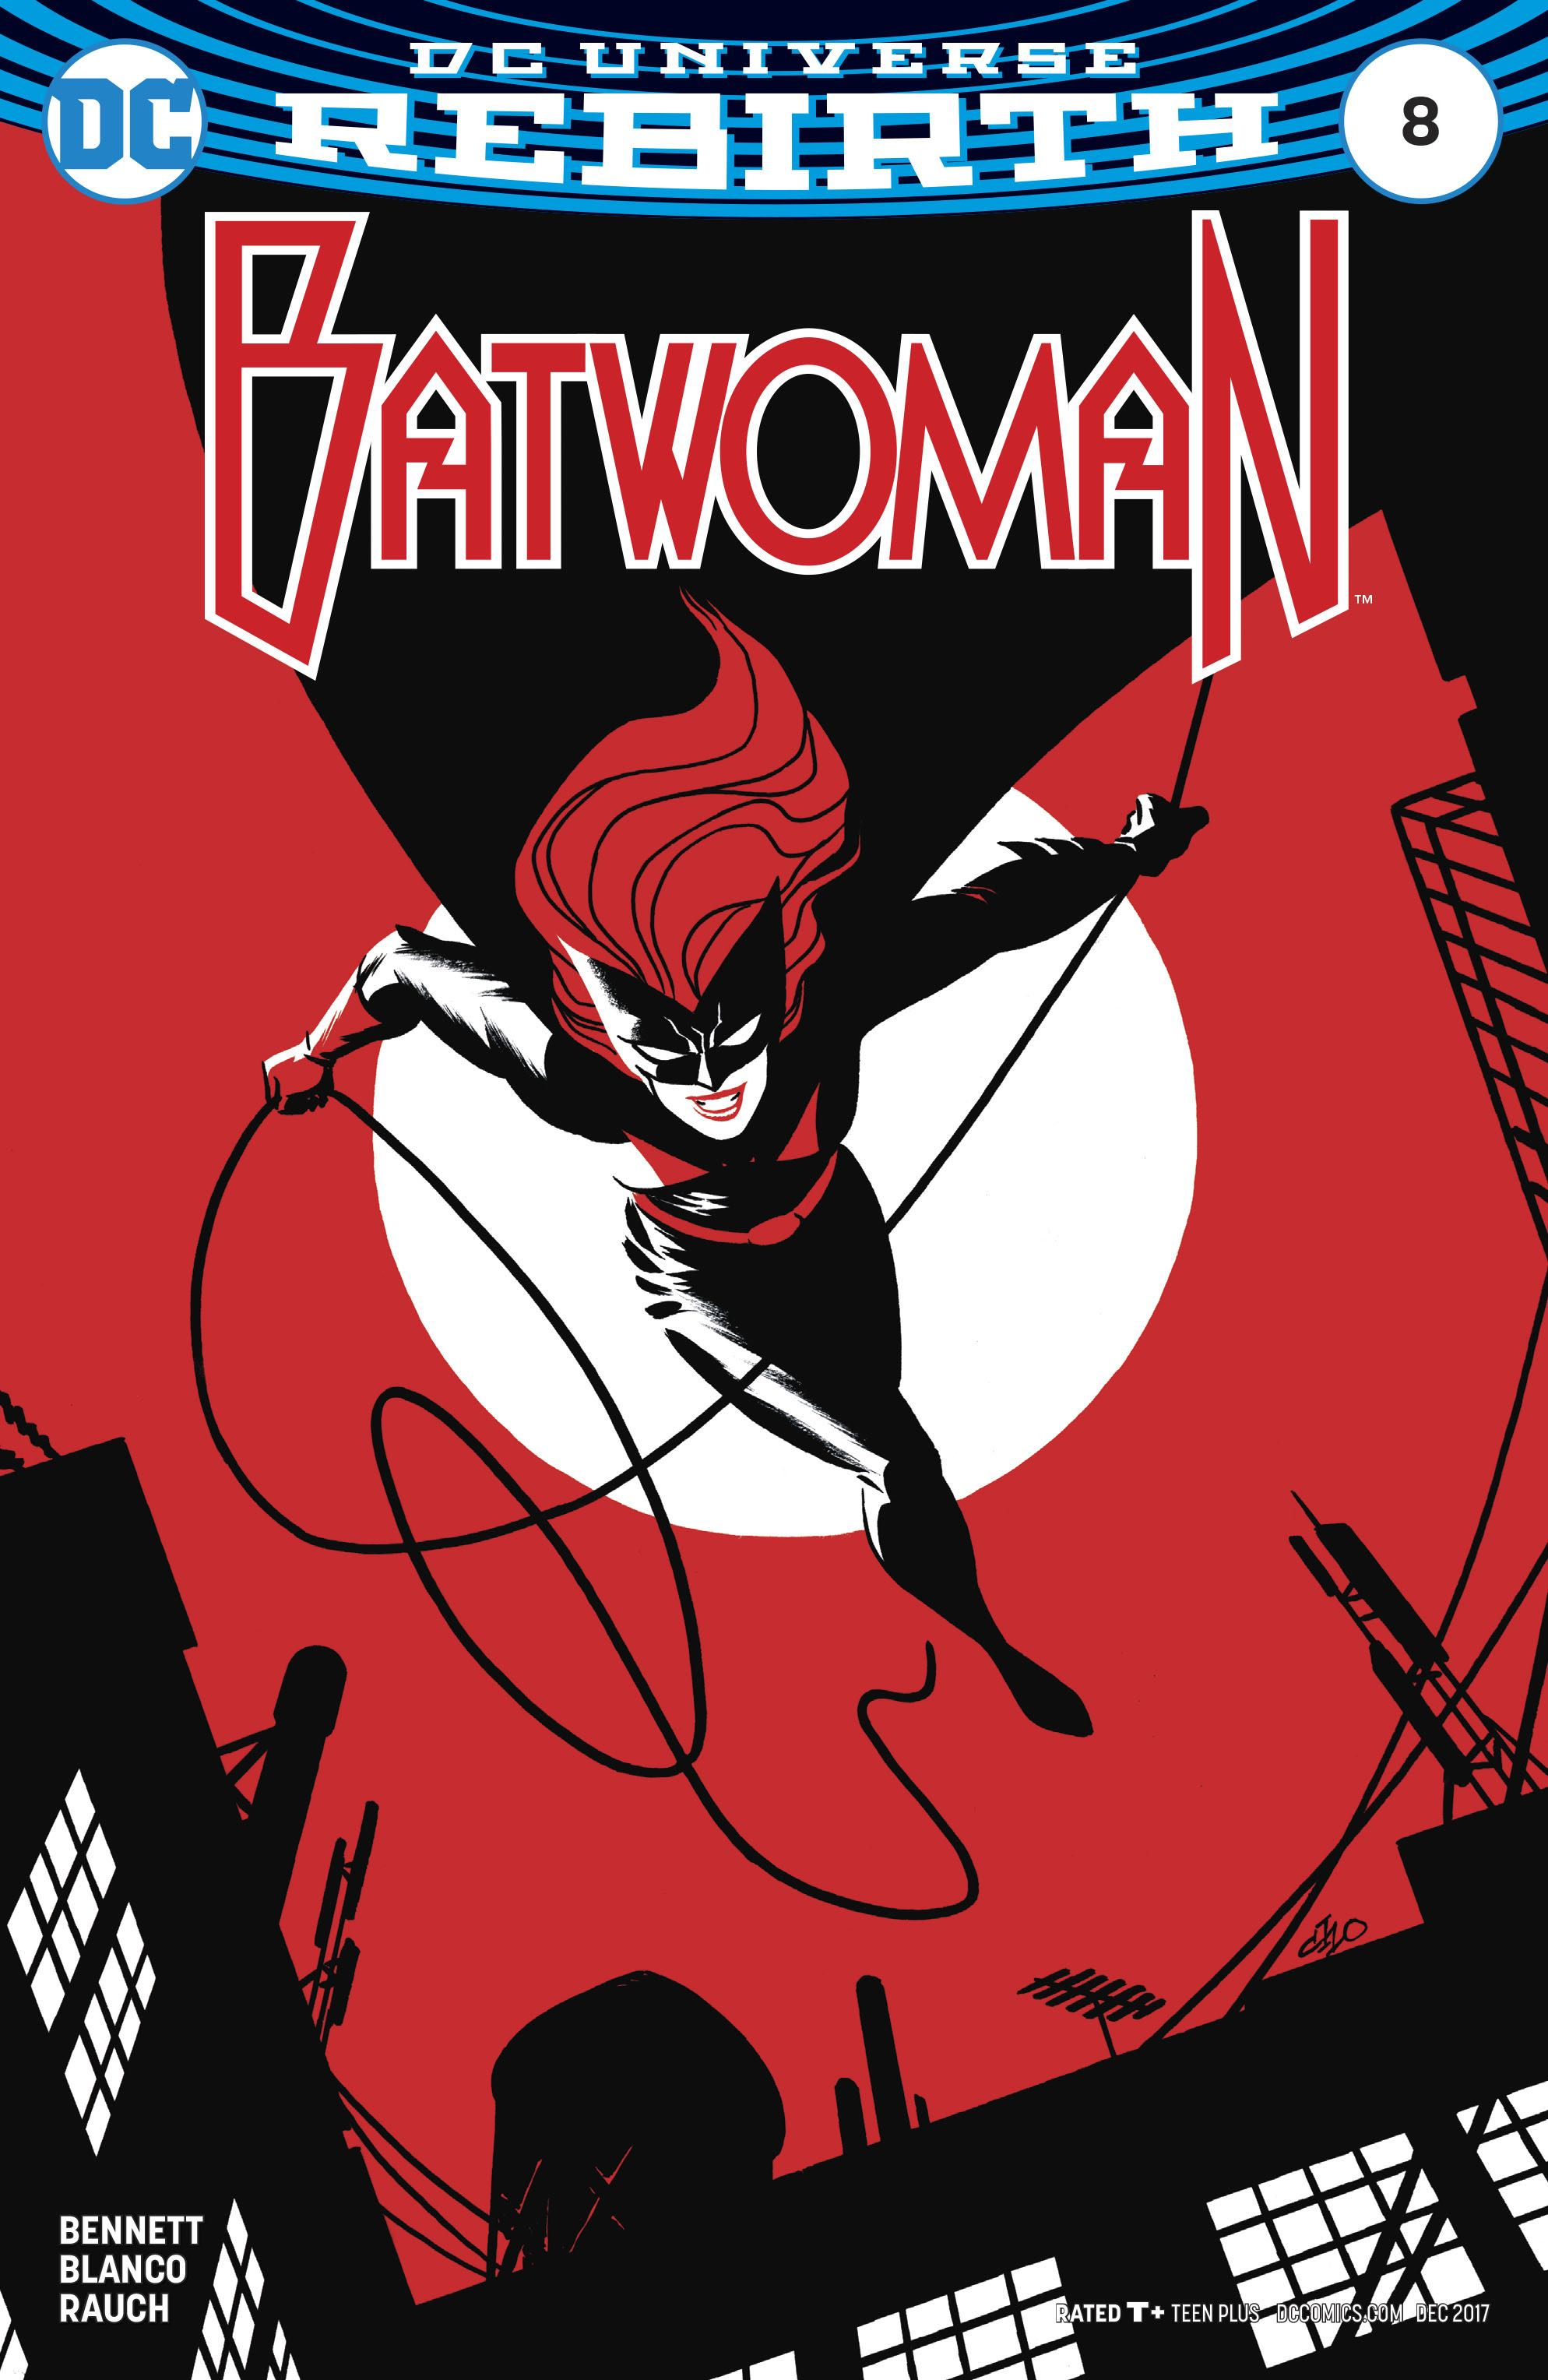 Episode 7 Variant of the Week! - (DC) Batwoman #8 (Cho Variant)Cover by Michael ChoWritten by Marguerite BennettIllustrated by Fernando BlancoDid the Content Match the Drapes? - UNR